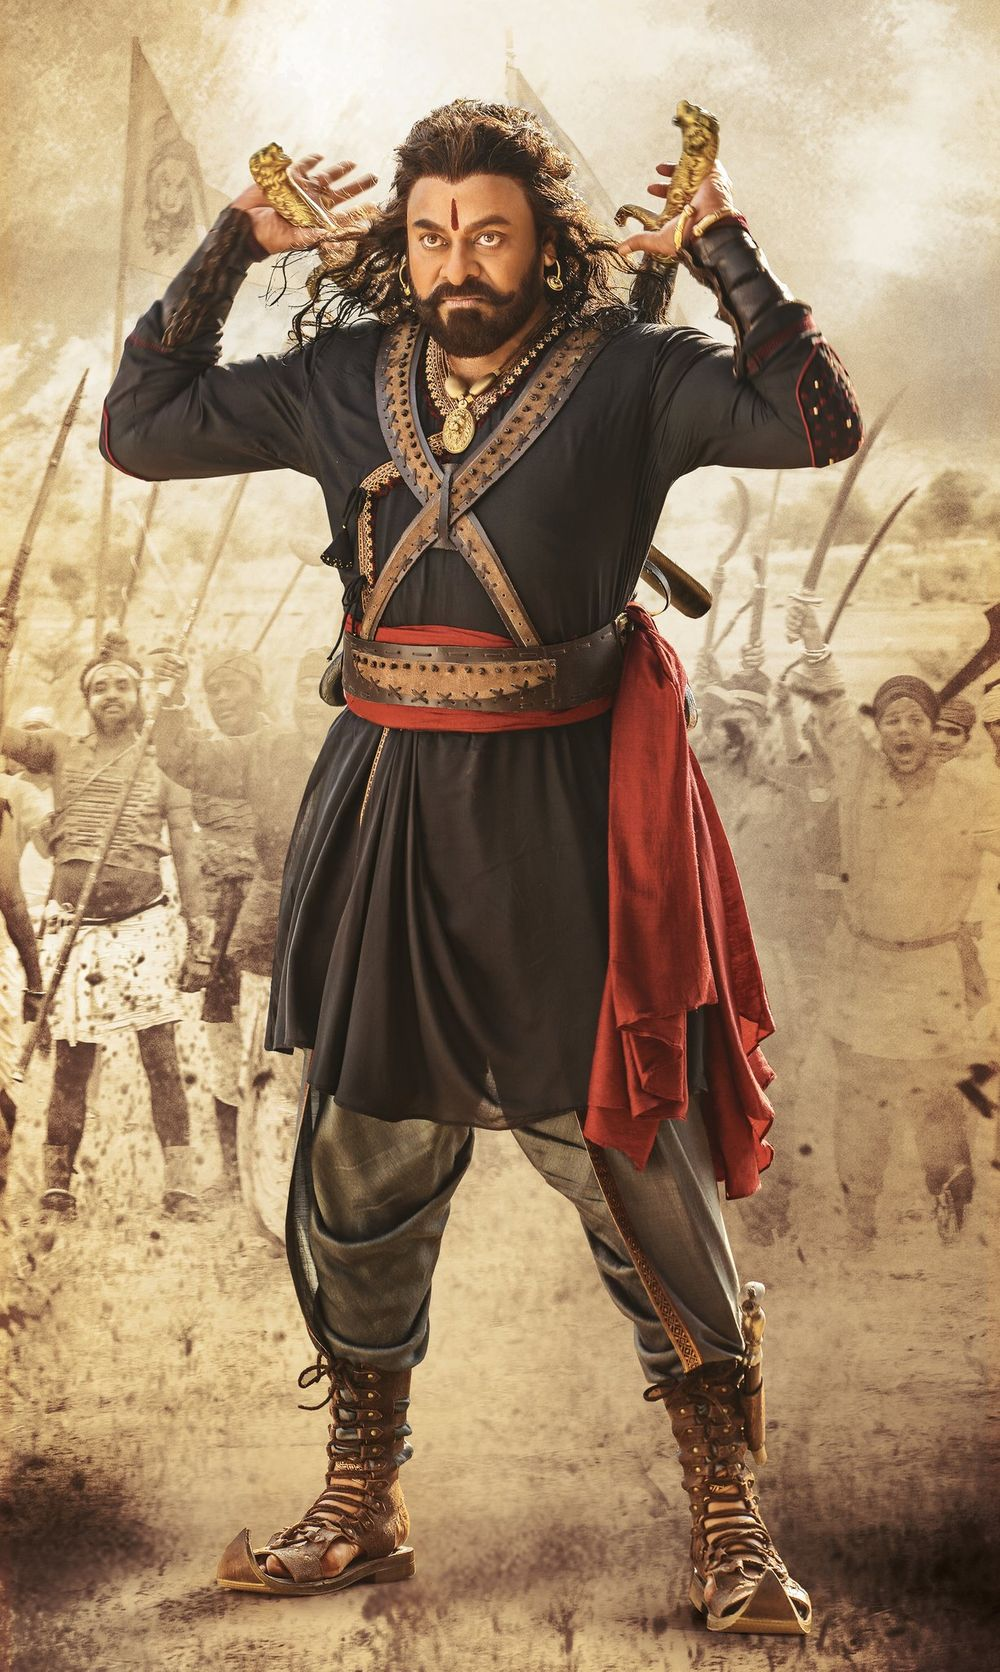 Sye Raa Narasimha Reddy Celebration Starts its battle this Gandhi Jayanthi